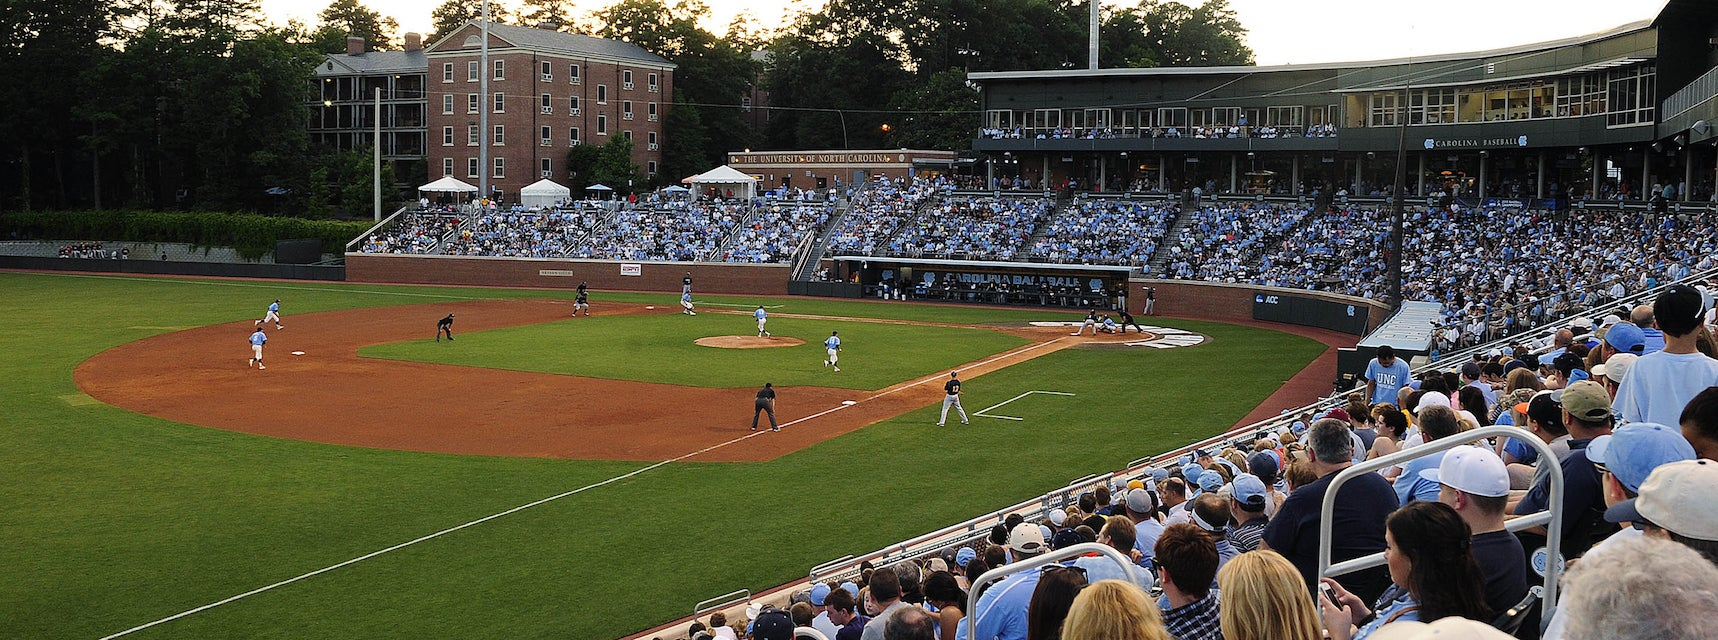 North Carolina Baseball Tickets